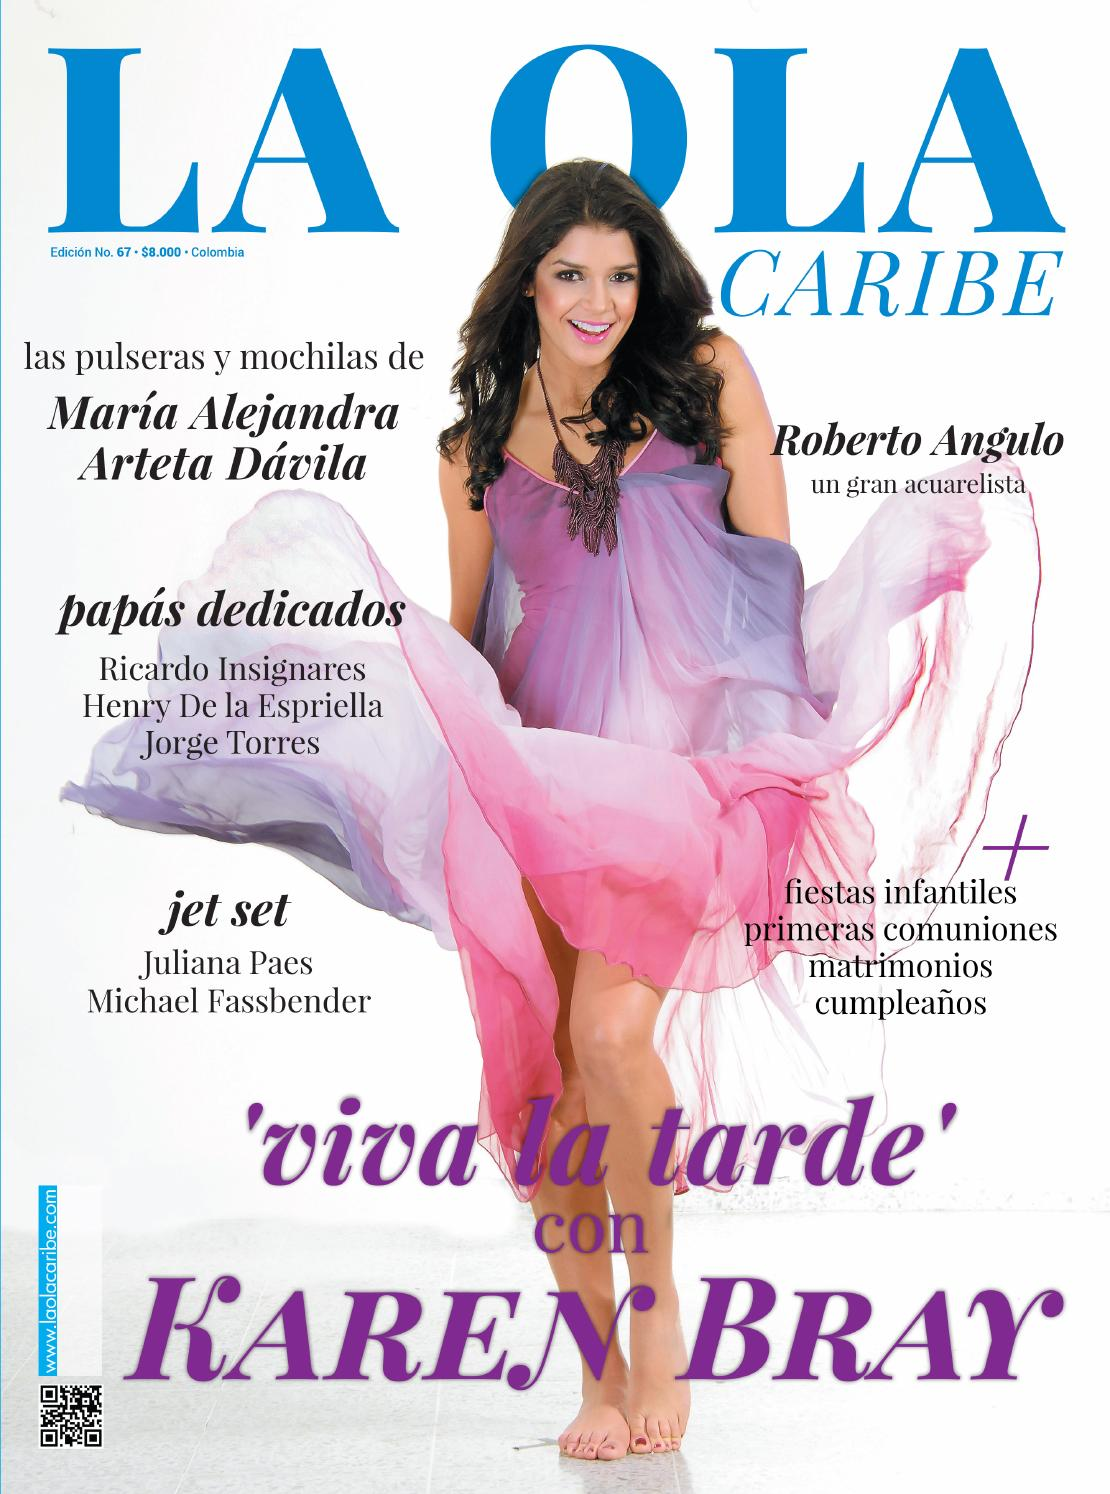 Edicion 67 by Revista LA OLA CARIBE - issuu